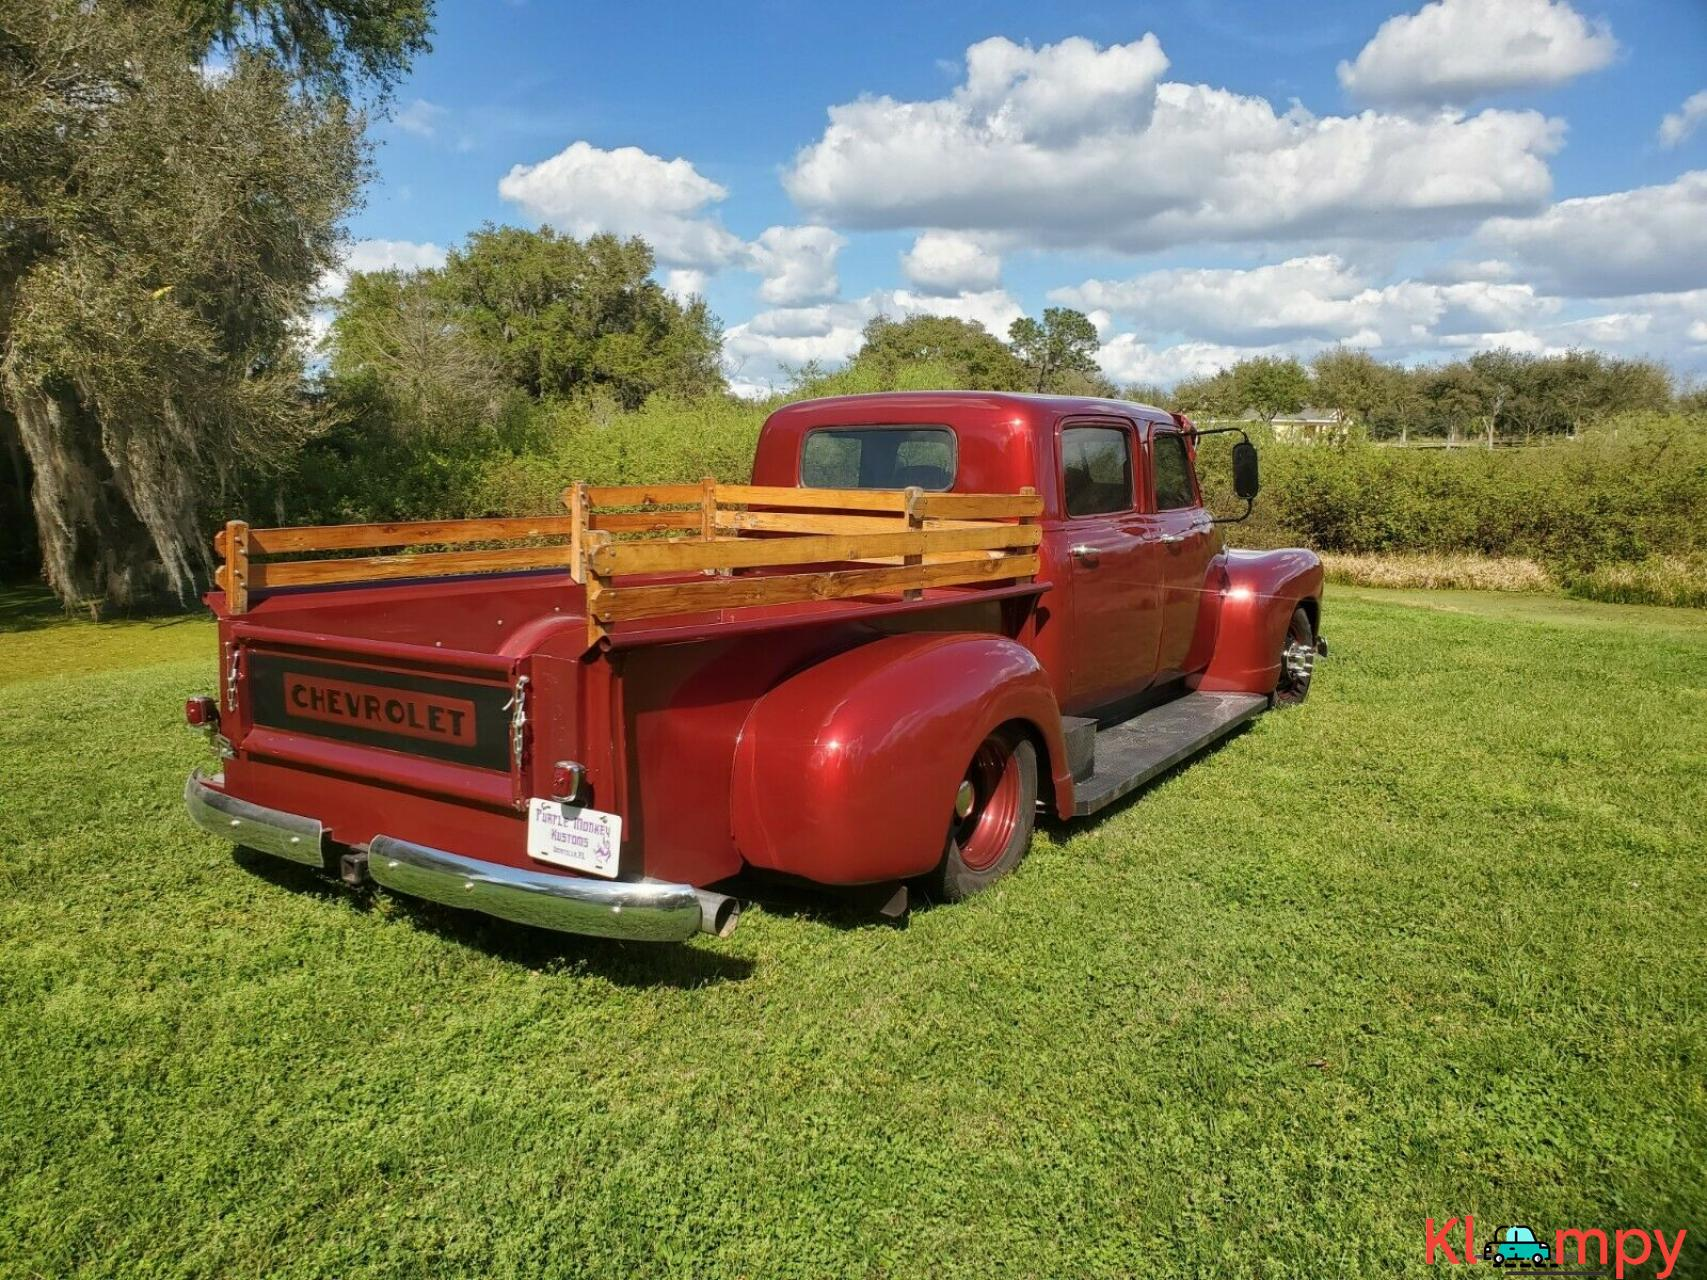 1949 Chevrolet Other Crewcab Diesel Dually - 8/14